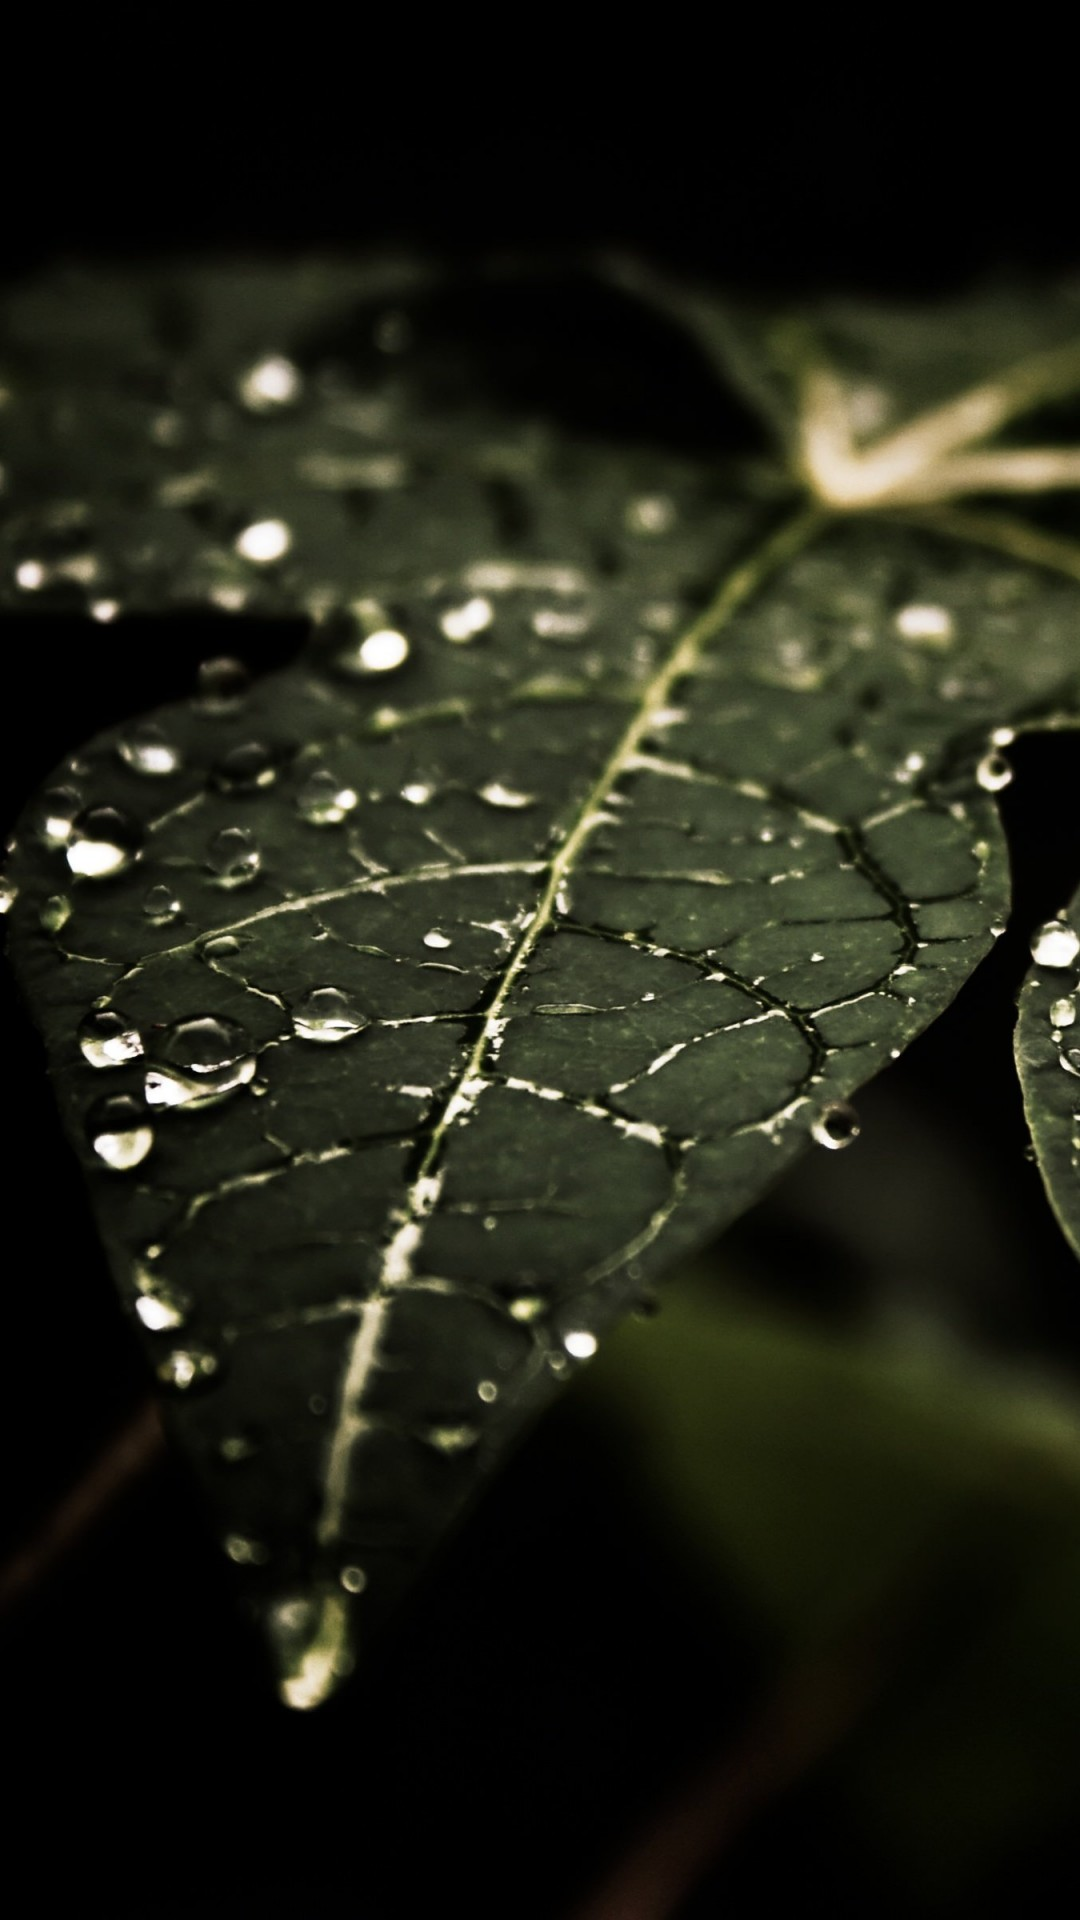 Droplets On Leaves Wallpaper for SAMSUNG Galaxy S5